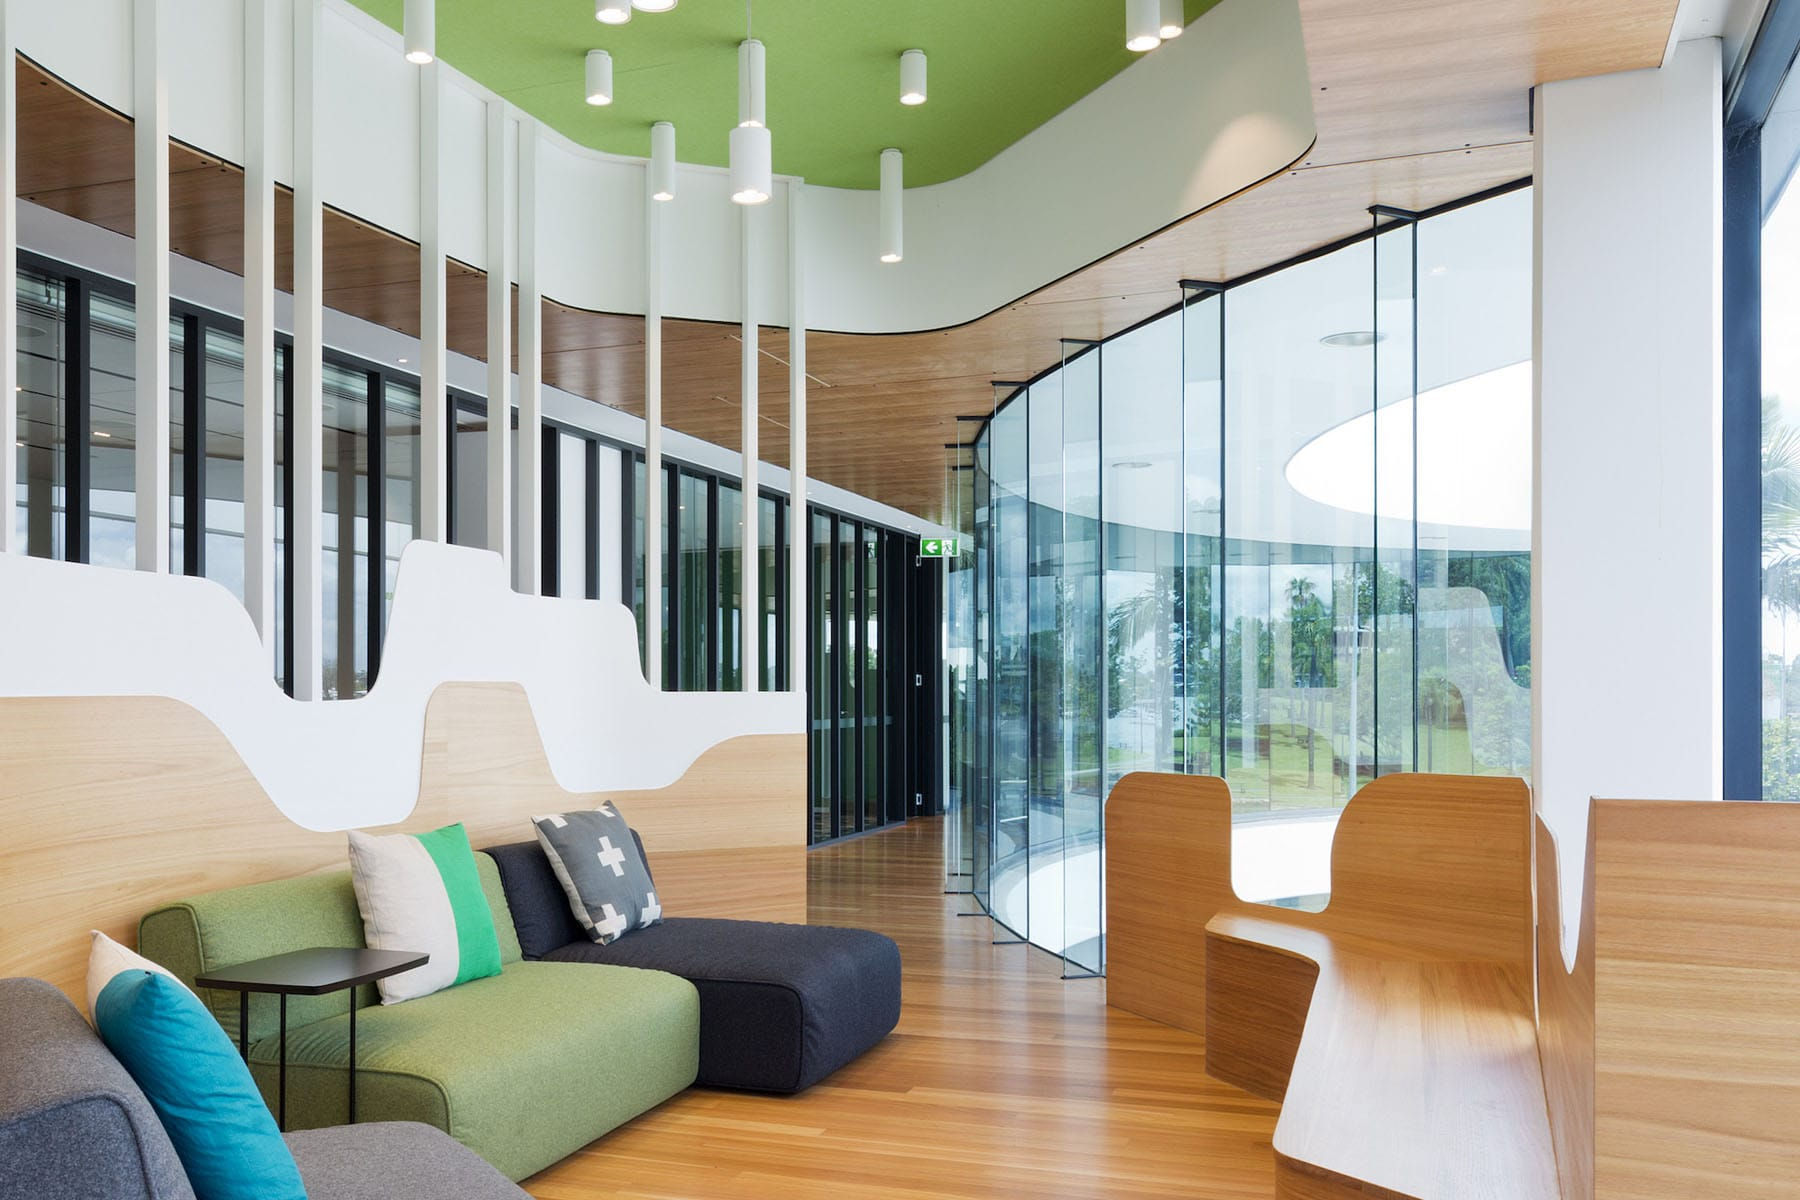 Create It Constructions. Murphy Pipe and Civil – Building Refurbishment. Construction Fitout. Office Fitout. Office Refurbishment. Building Fitout. Albion - Brisbane. Waiting Area. Corporate Lounge. Ceiling Feature with PCV Pipe and Lighting.